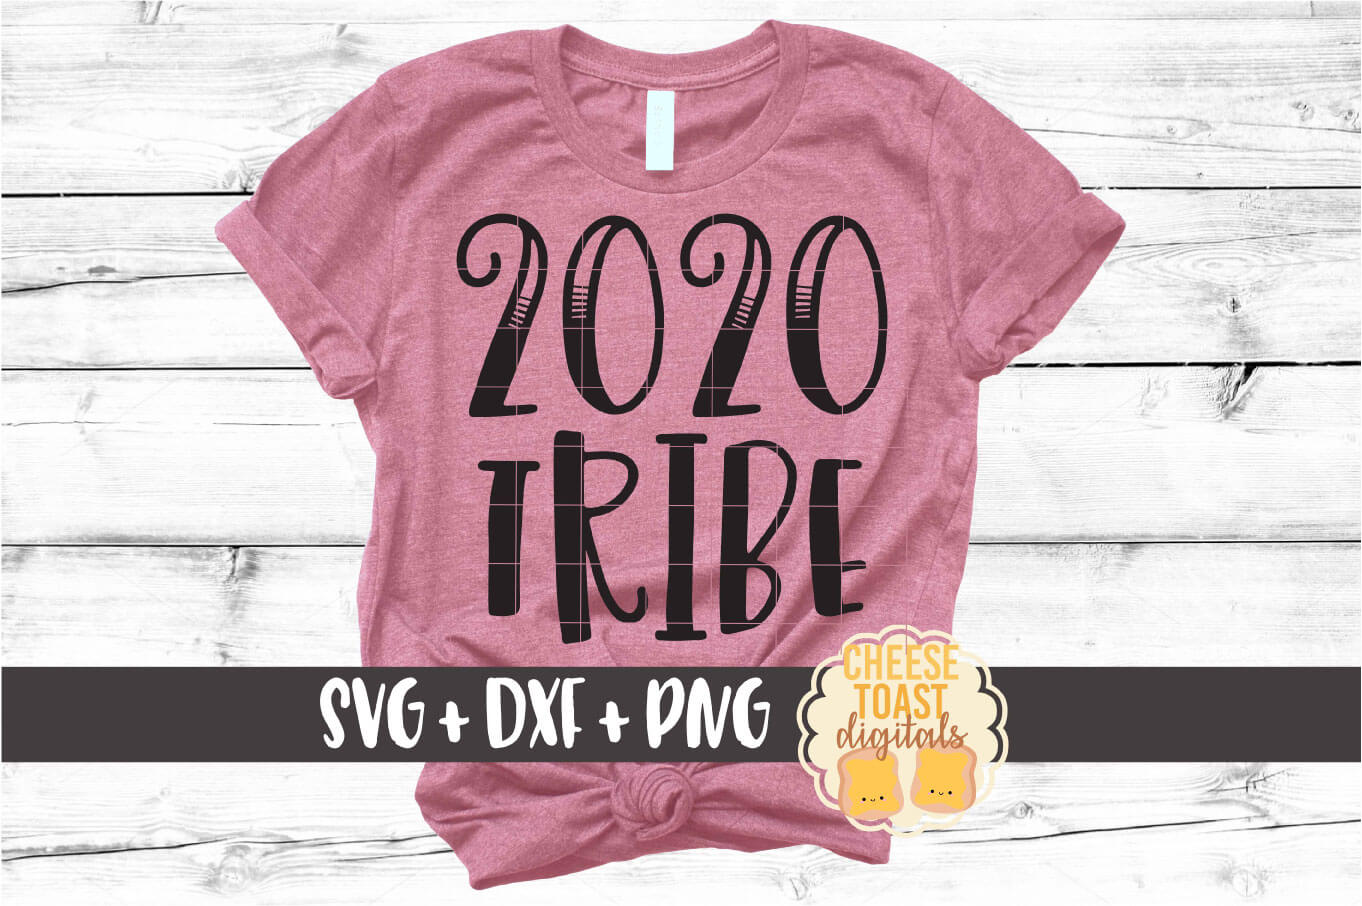 2020 Tribe - New Year SVG PNG DXF Cut Files example image 1